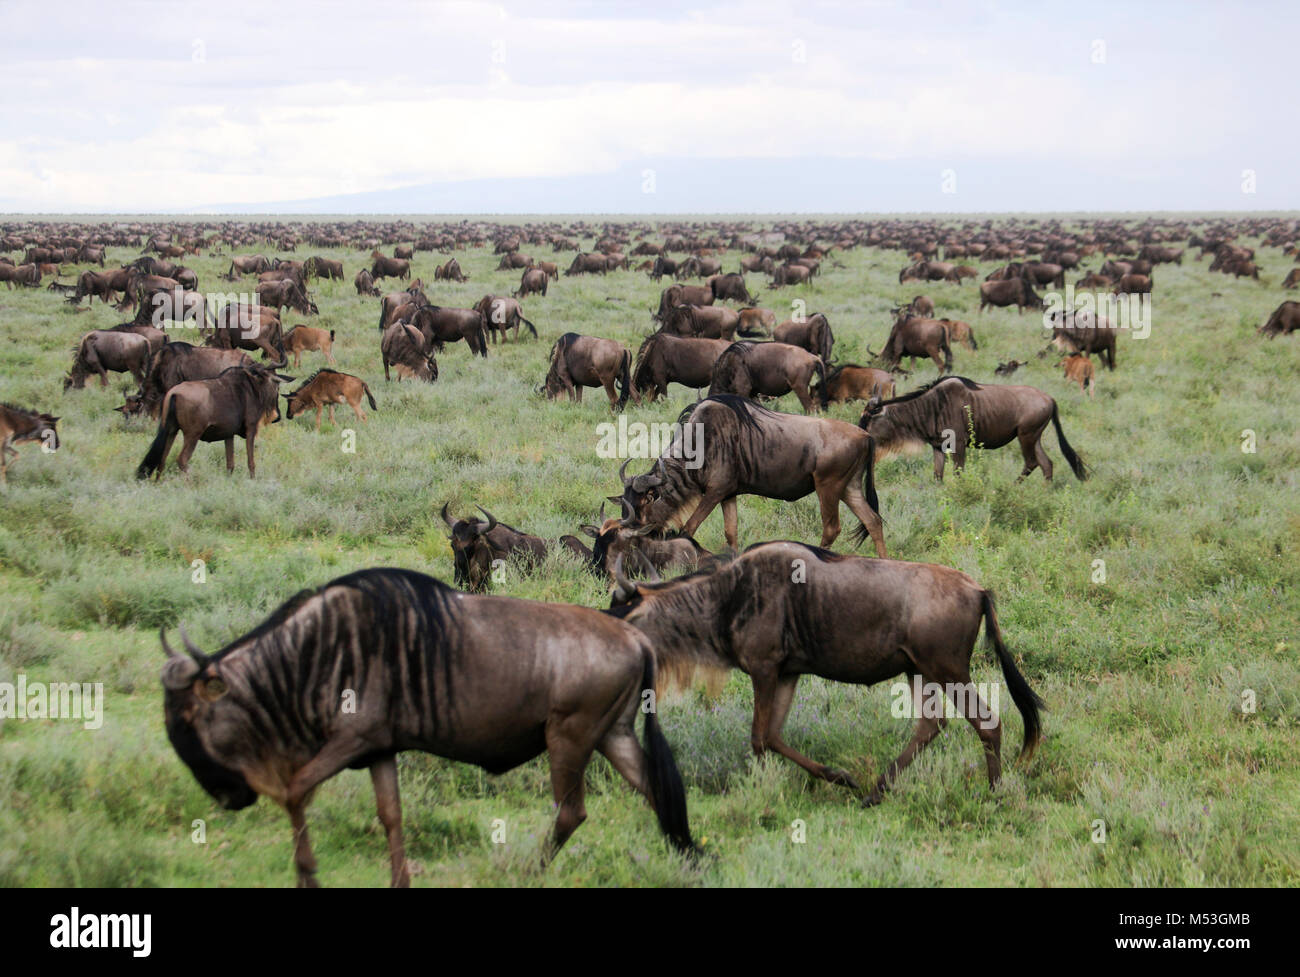 Annual migration of over one million Blue Wildebeest (Connochaetes taurinus) and 200,000 zebras. Photographed in - Stock Image